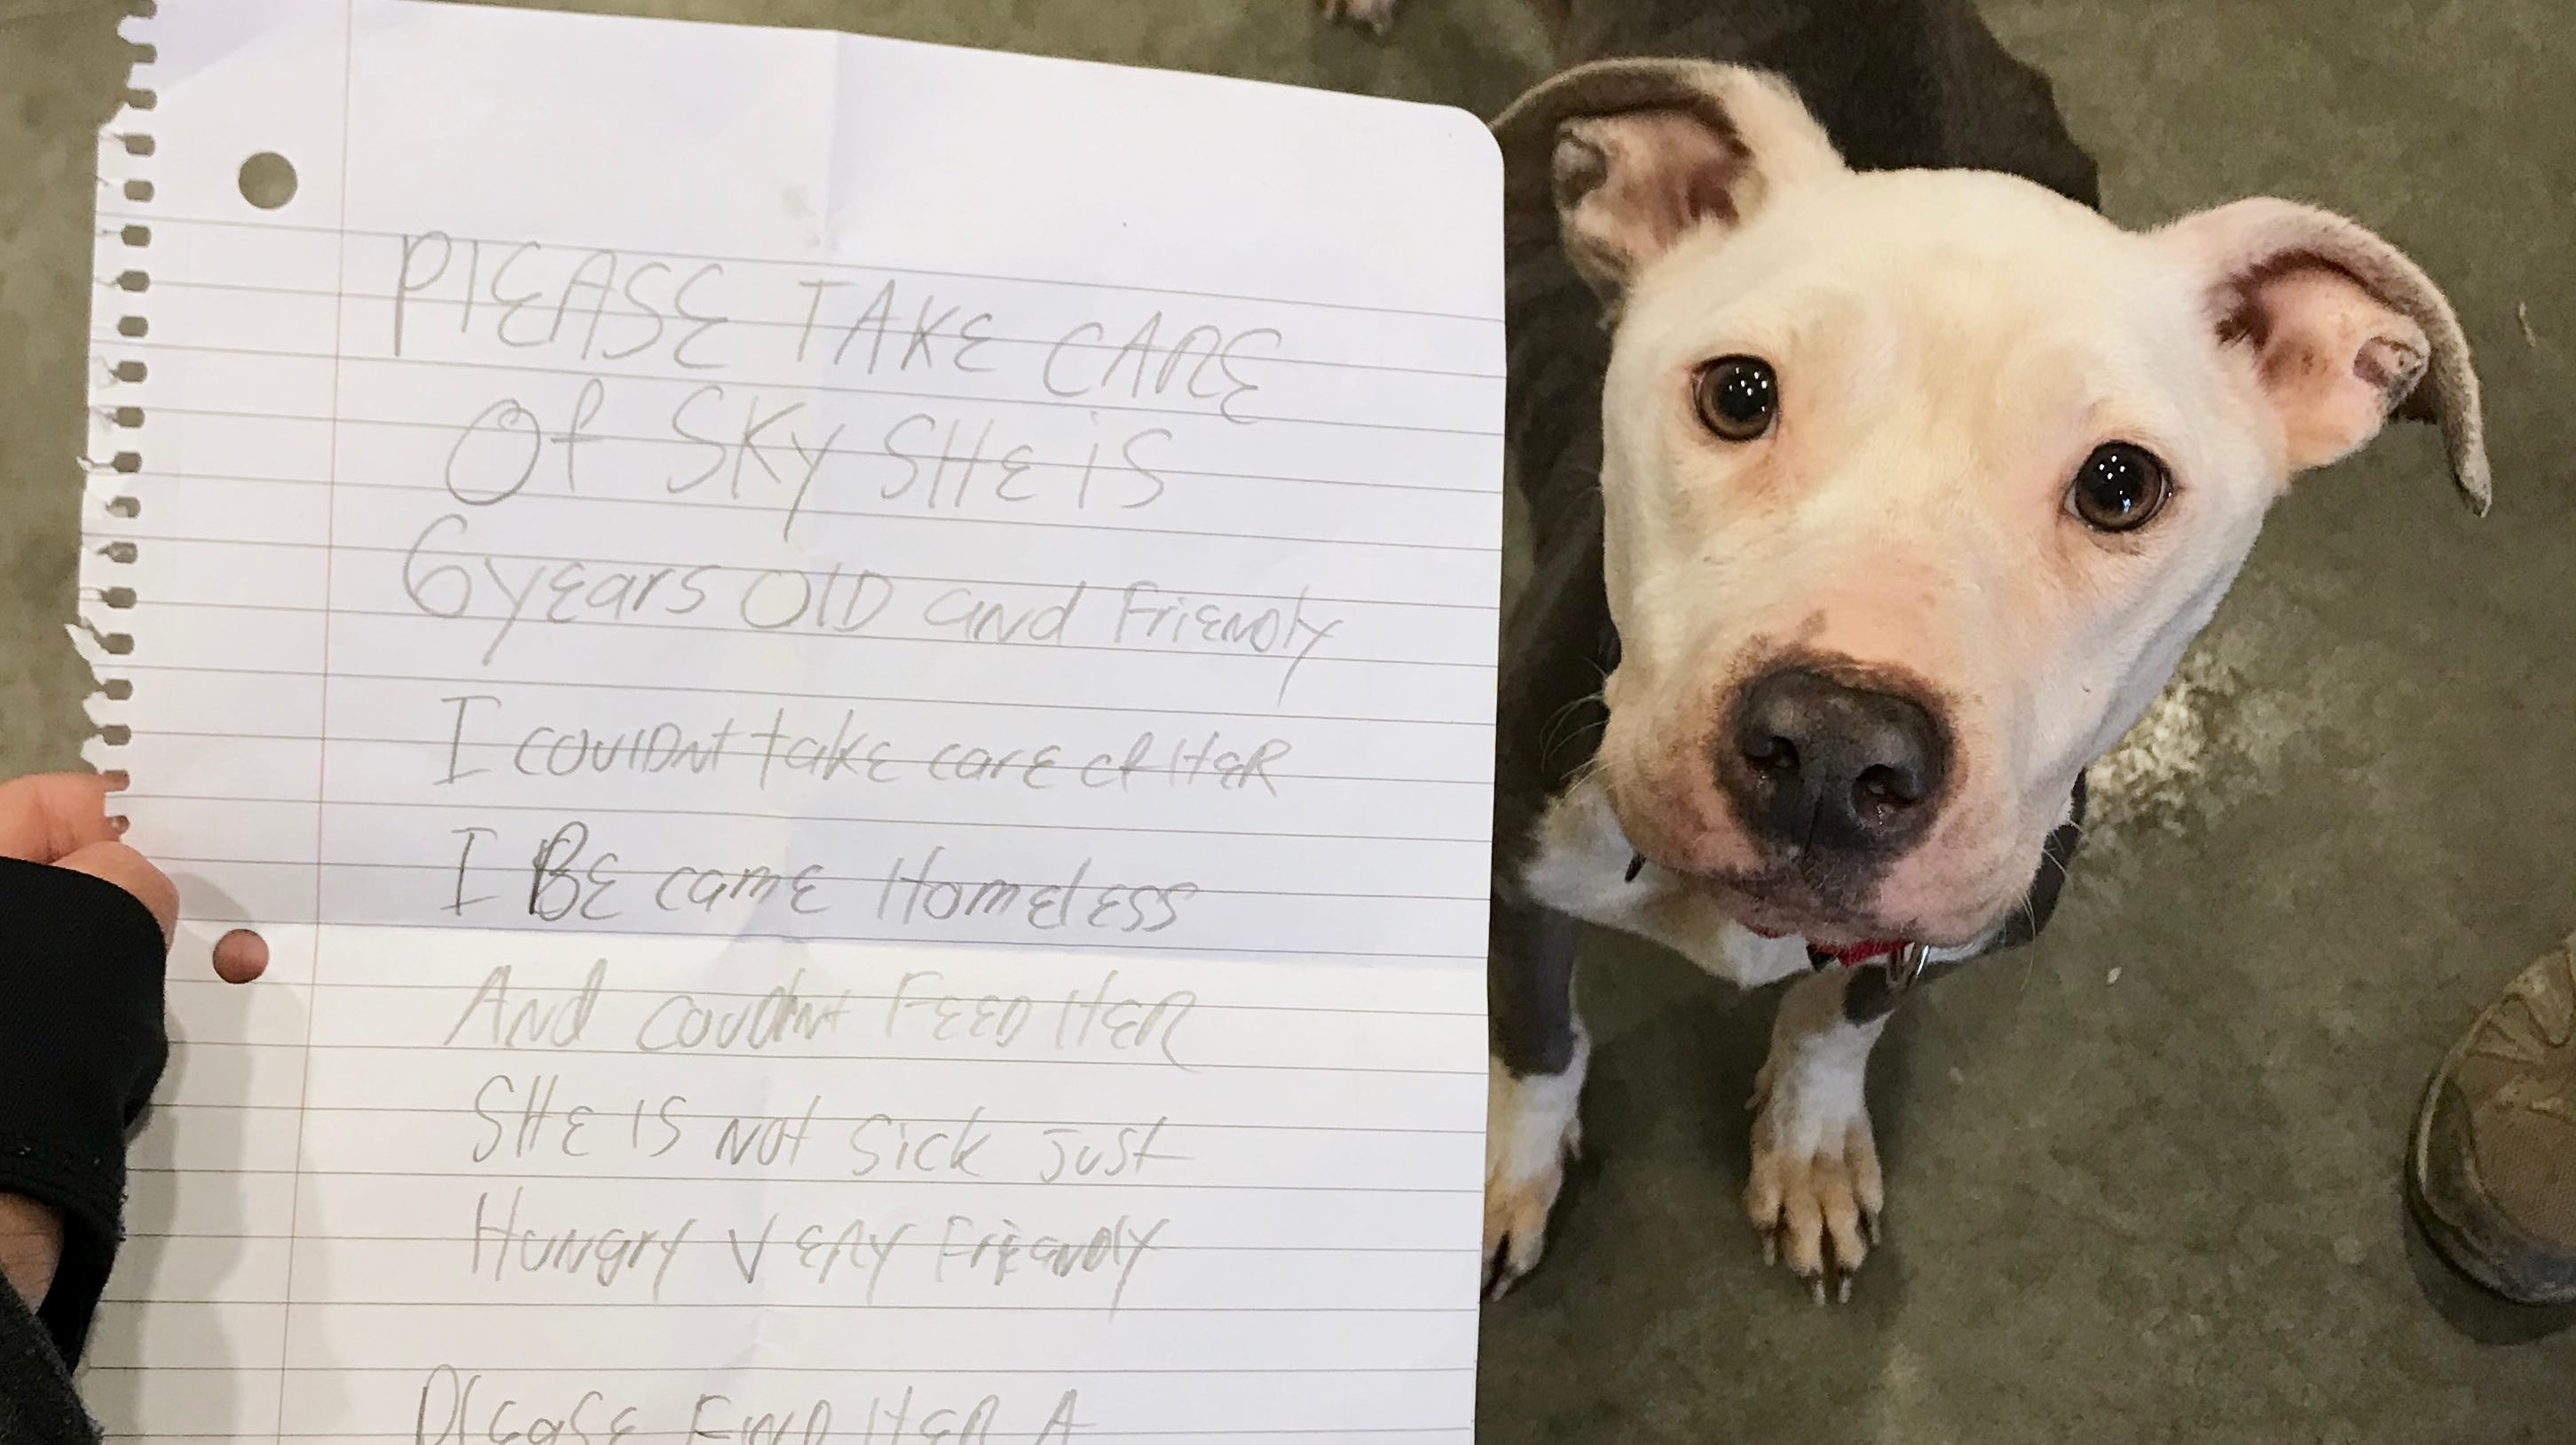 "A terrier mix named Sky was abandoned with a note at the Delaware Humane Association in Wilmington on Jan. 2, 2019. ""Please take care of Sky,"" the note says. ""She 6 years old and friendly. I couldn't take care of her. I become homeless and couldn't feed her. She is not sick, just hungry, very friendly. Please find her a home. Please."""